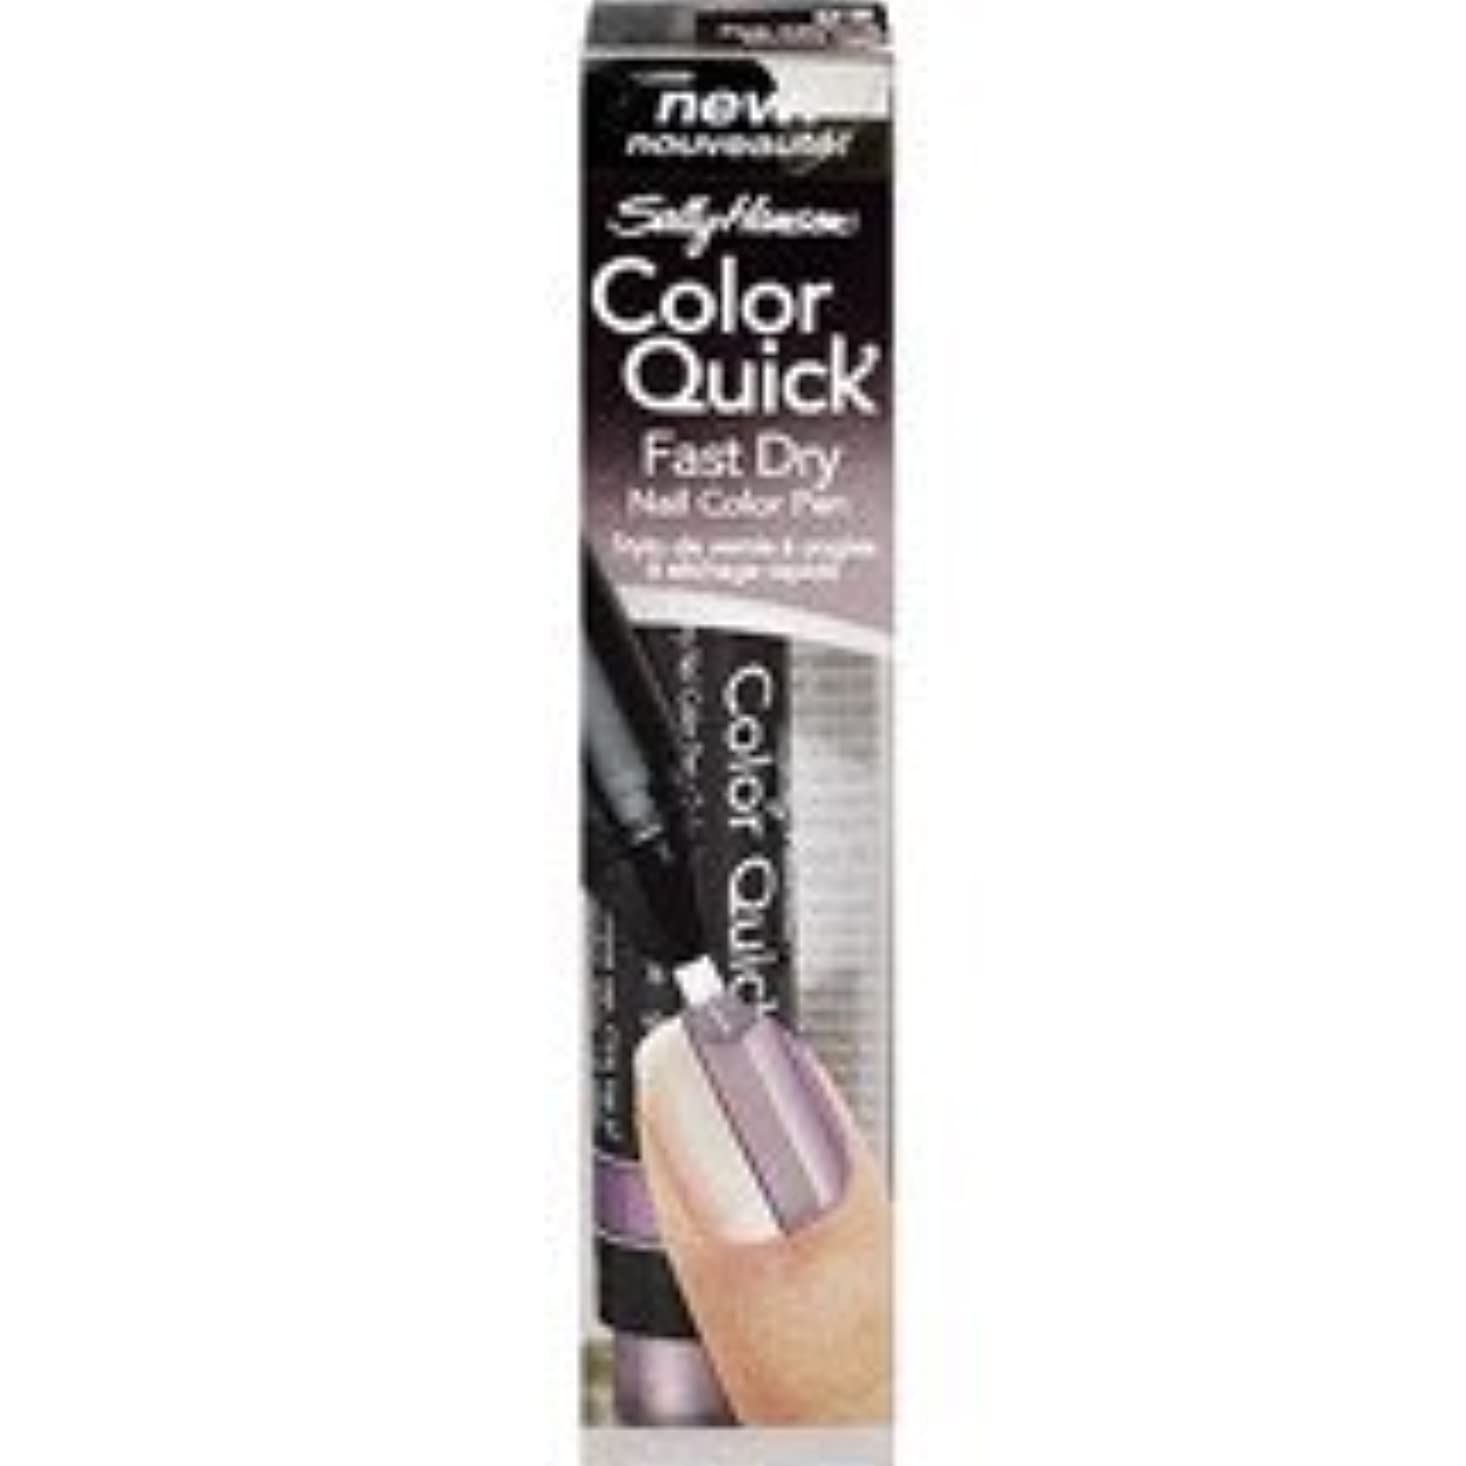 SALLY HANSEN COLOR QUICK FAST DRY NAIL COLOR PEN #05 PINK CHROME